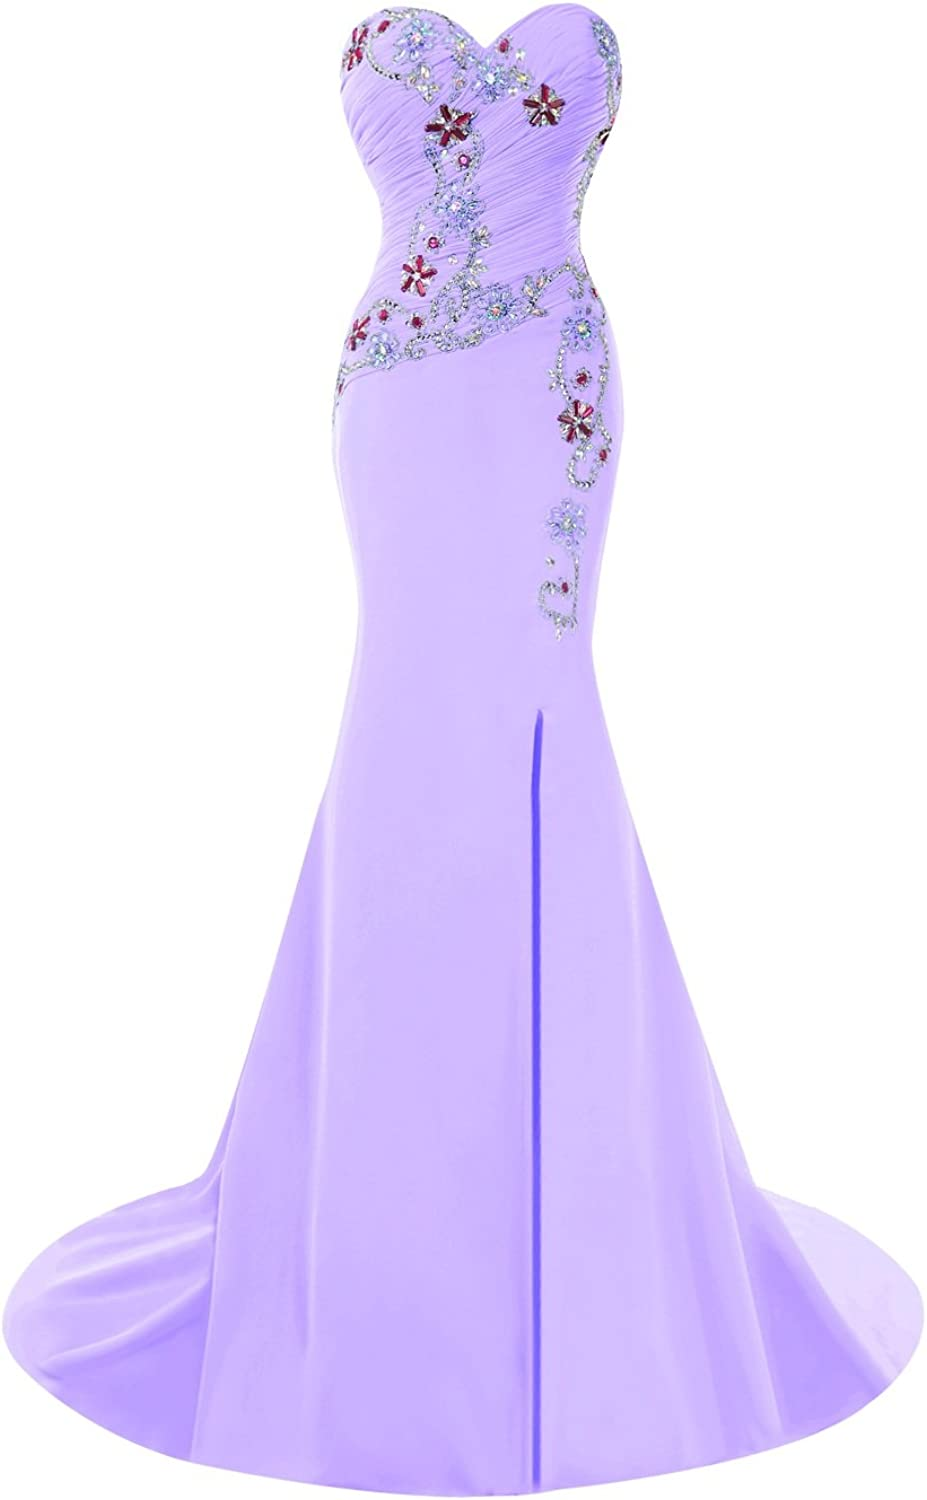 Bess Bridal Women's Mermaid Split Side Prom Dresses with Beads